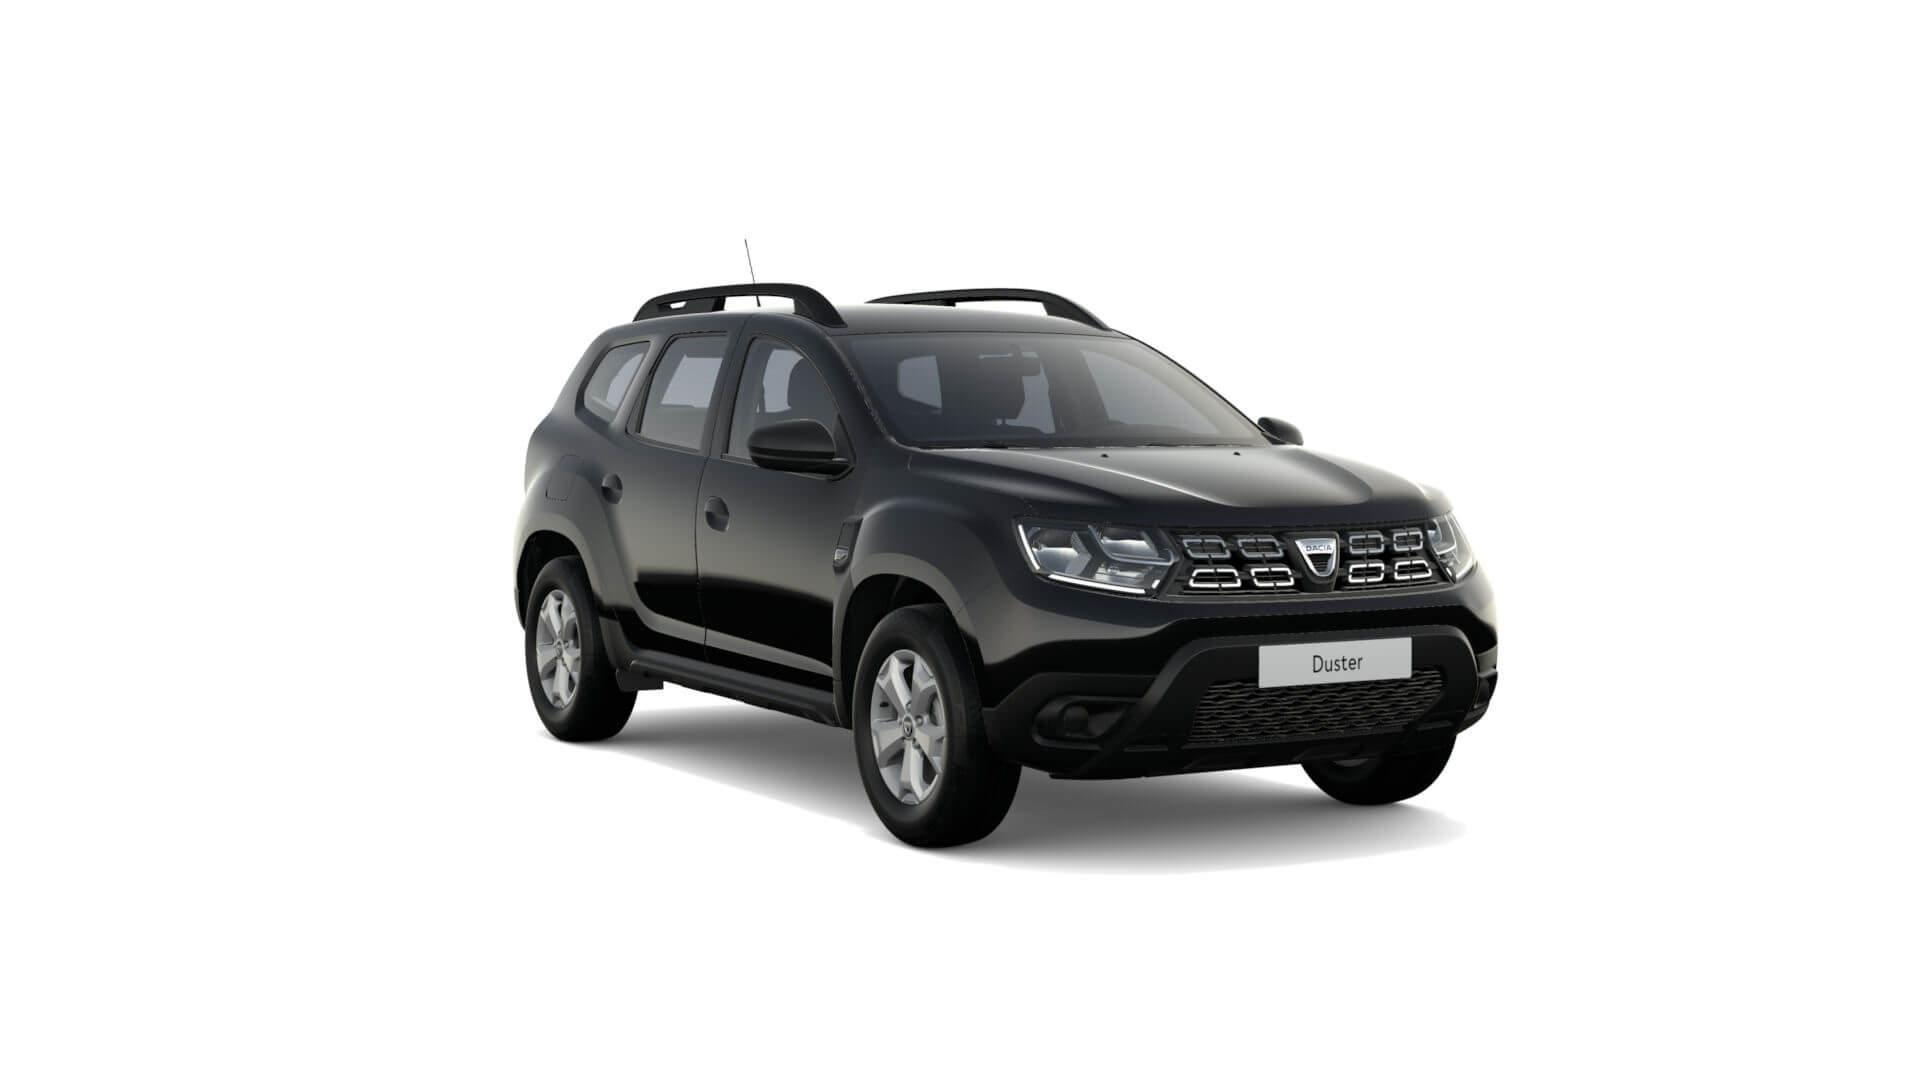 Automodell schwarz - Dacia Duster - Renault Ahrens Hannover